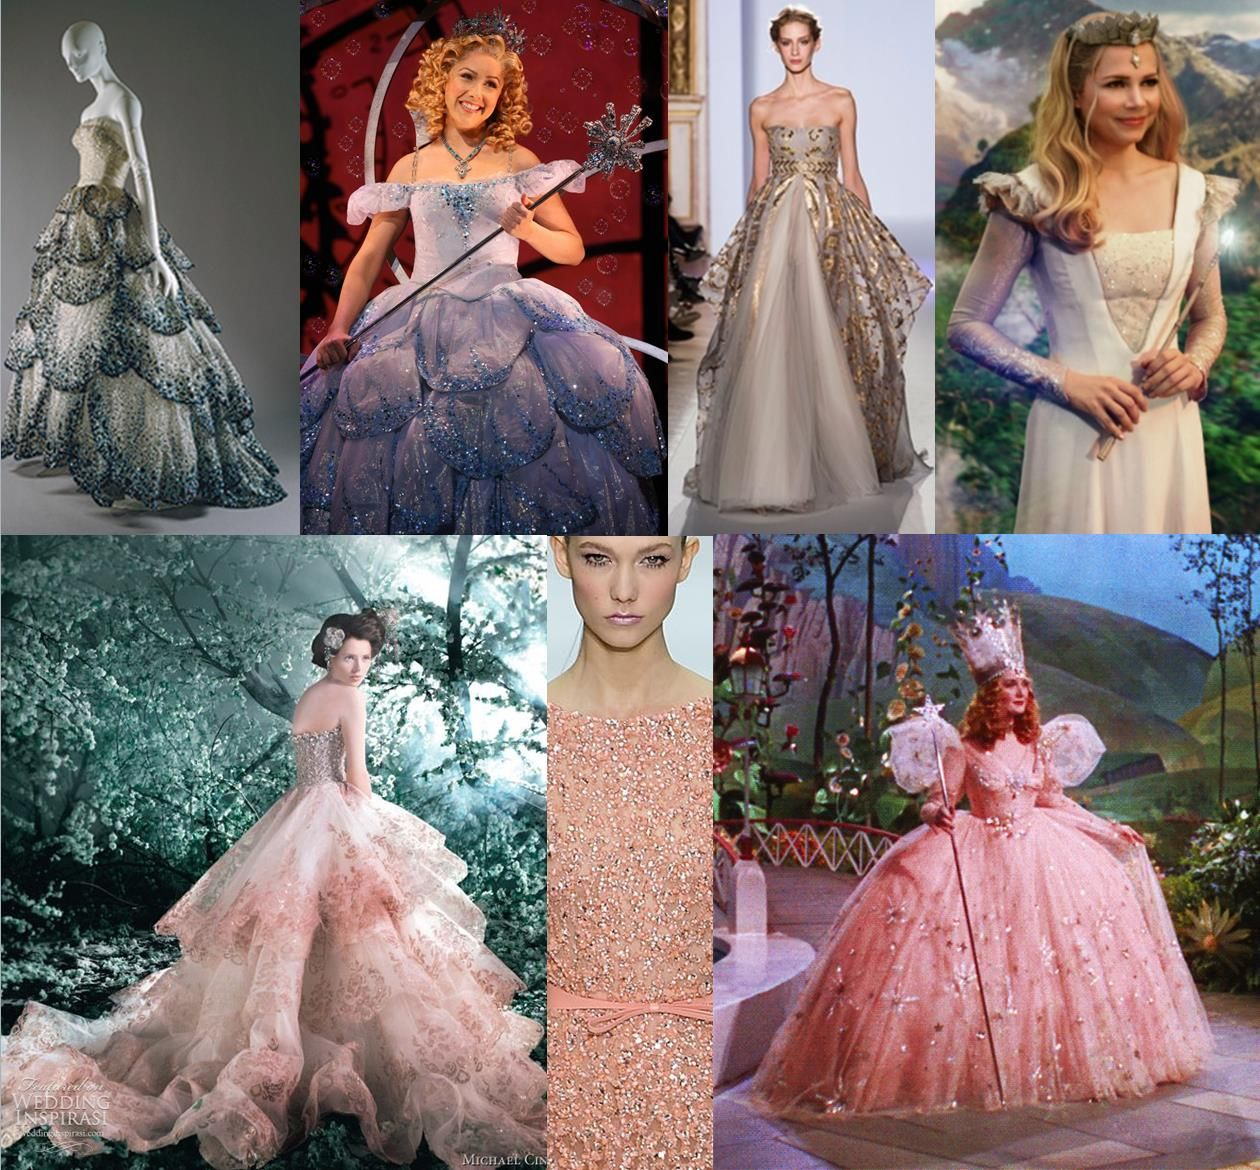 Fashion style Fashion: Movie oz the great and powerful for woman